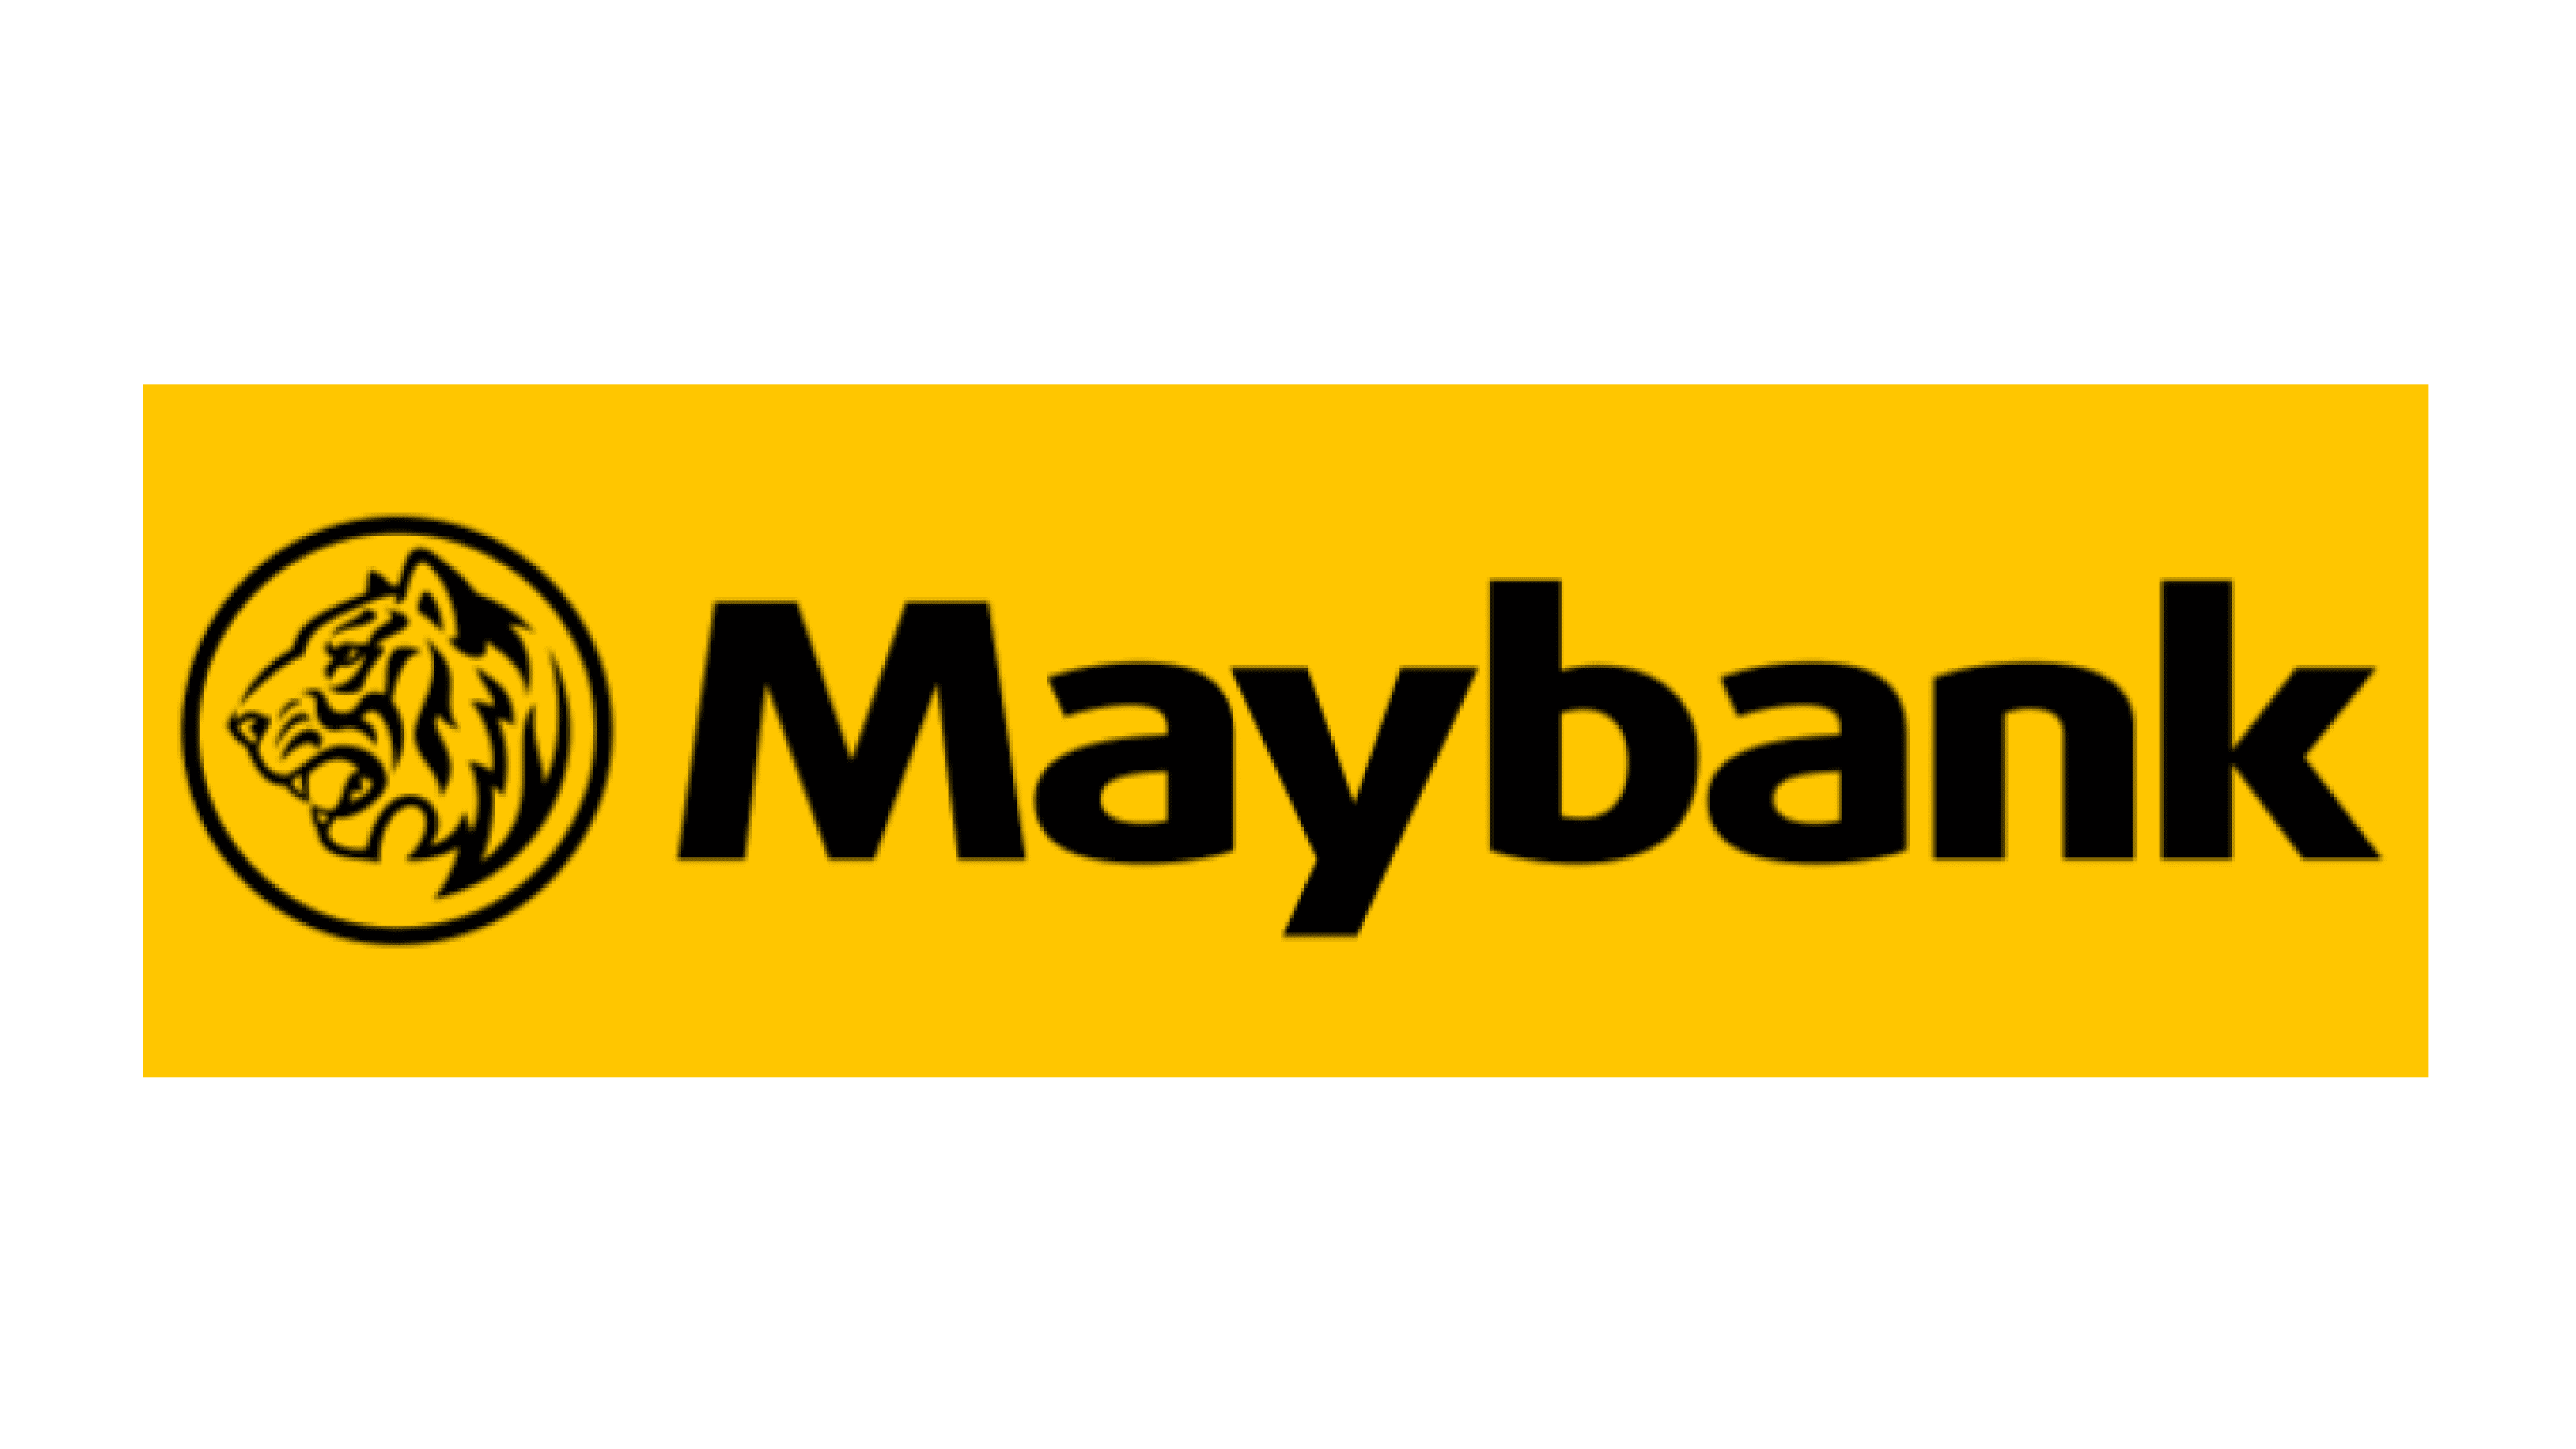 Maybank Logo   evolution history and meaning, PNG